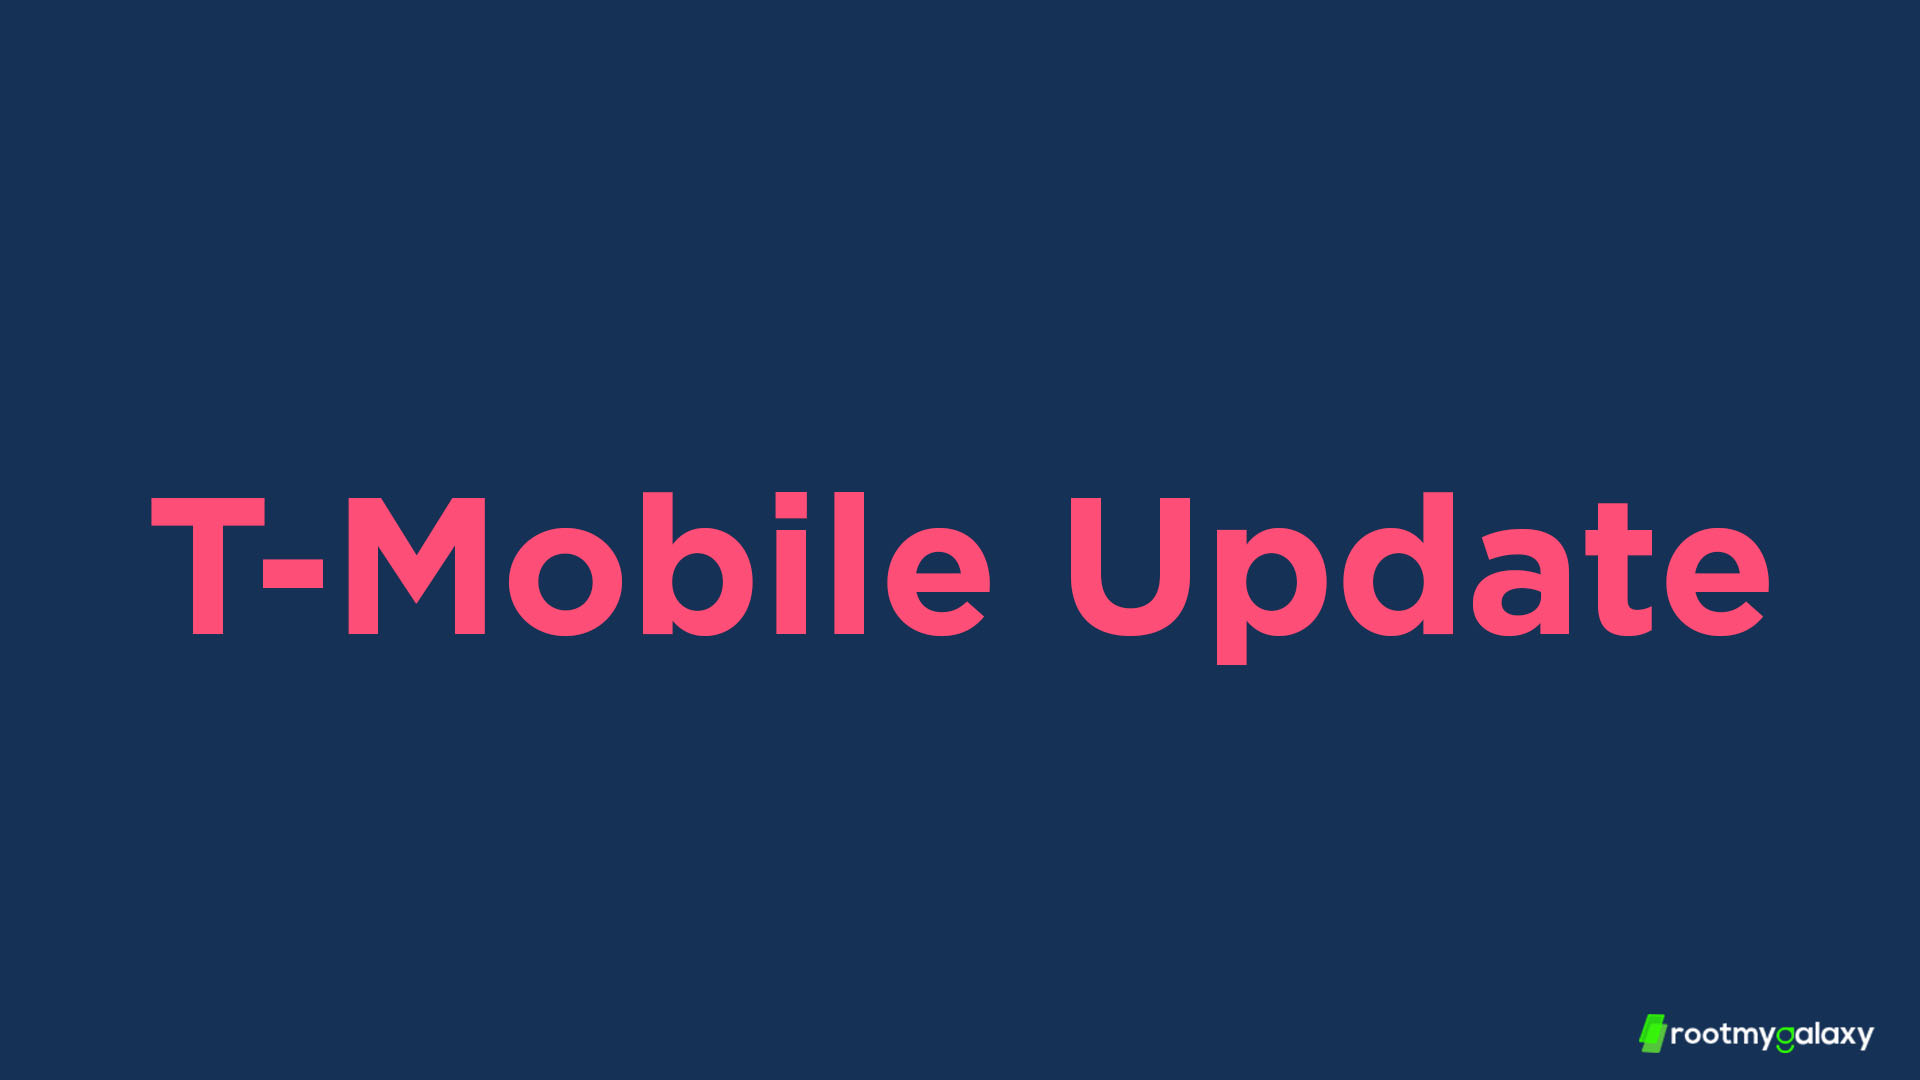 T-Mobile May 2020 security patch rolled out for Galaxy Note 10+ 5G and OnePlus 7T Pro 5G McLaren Edition